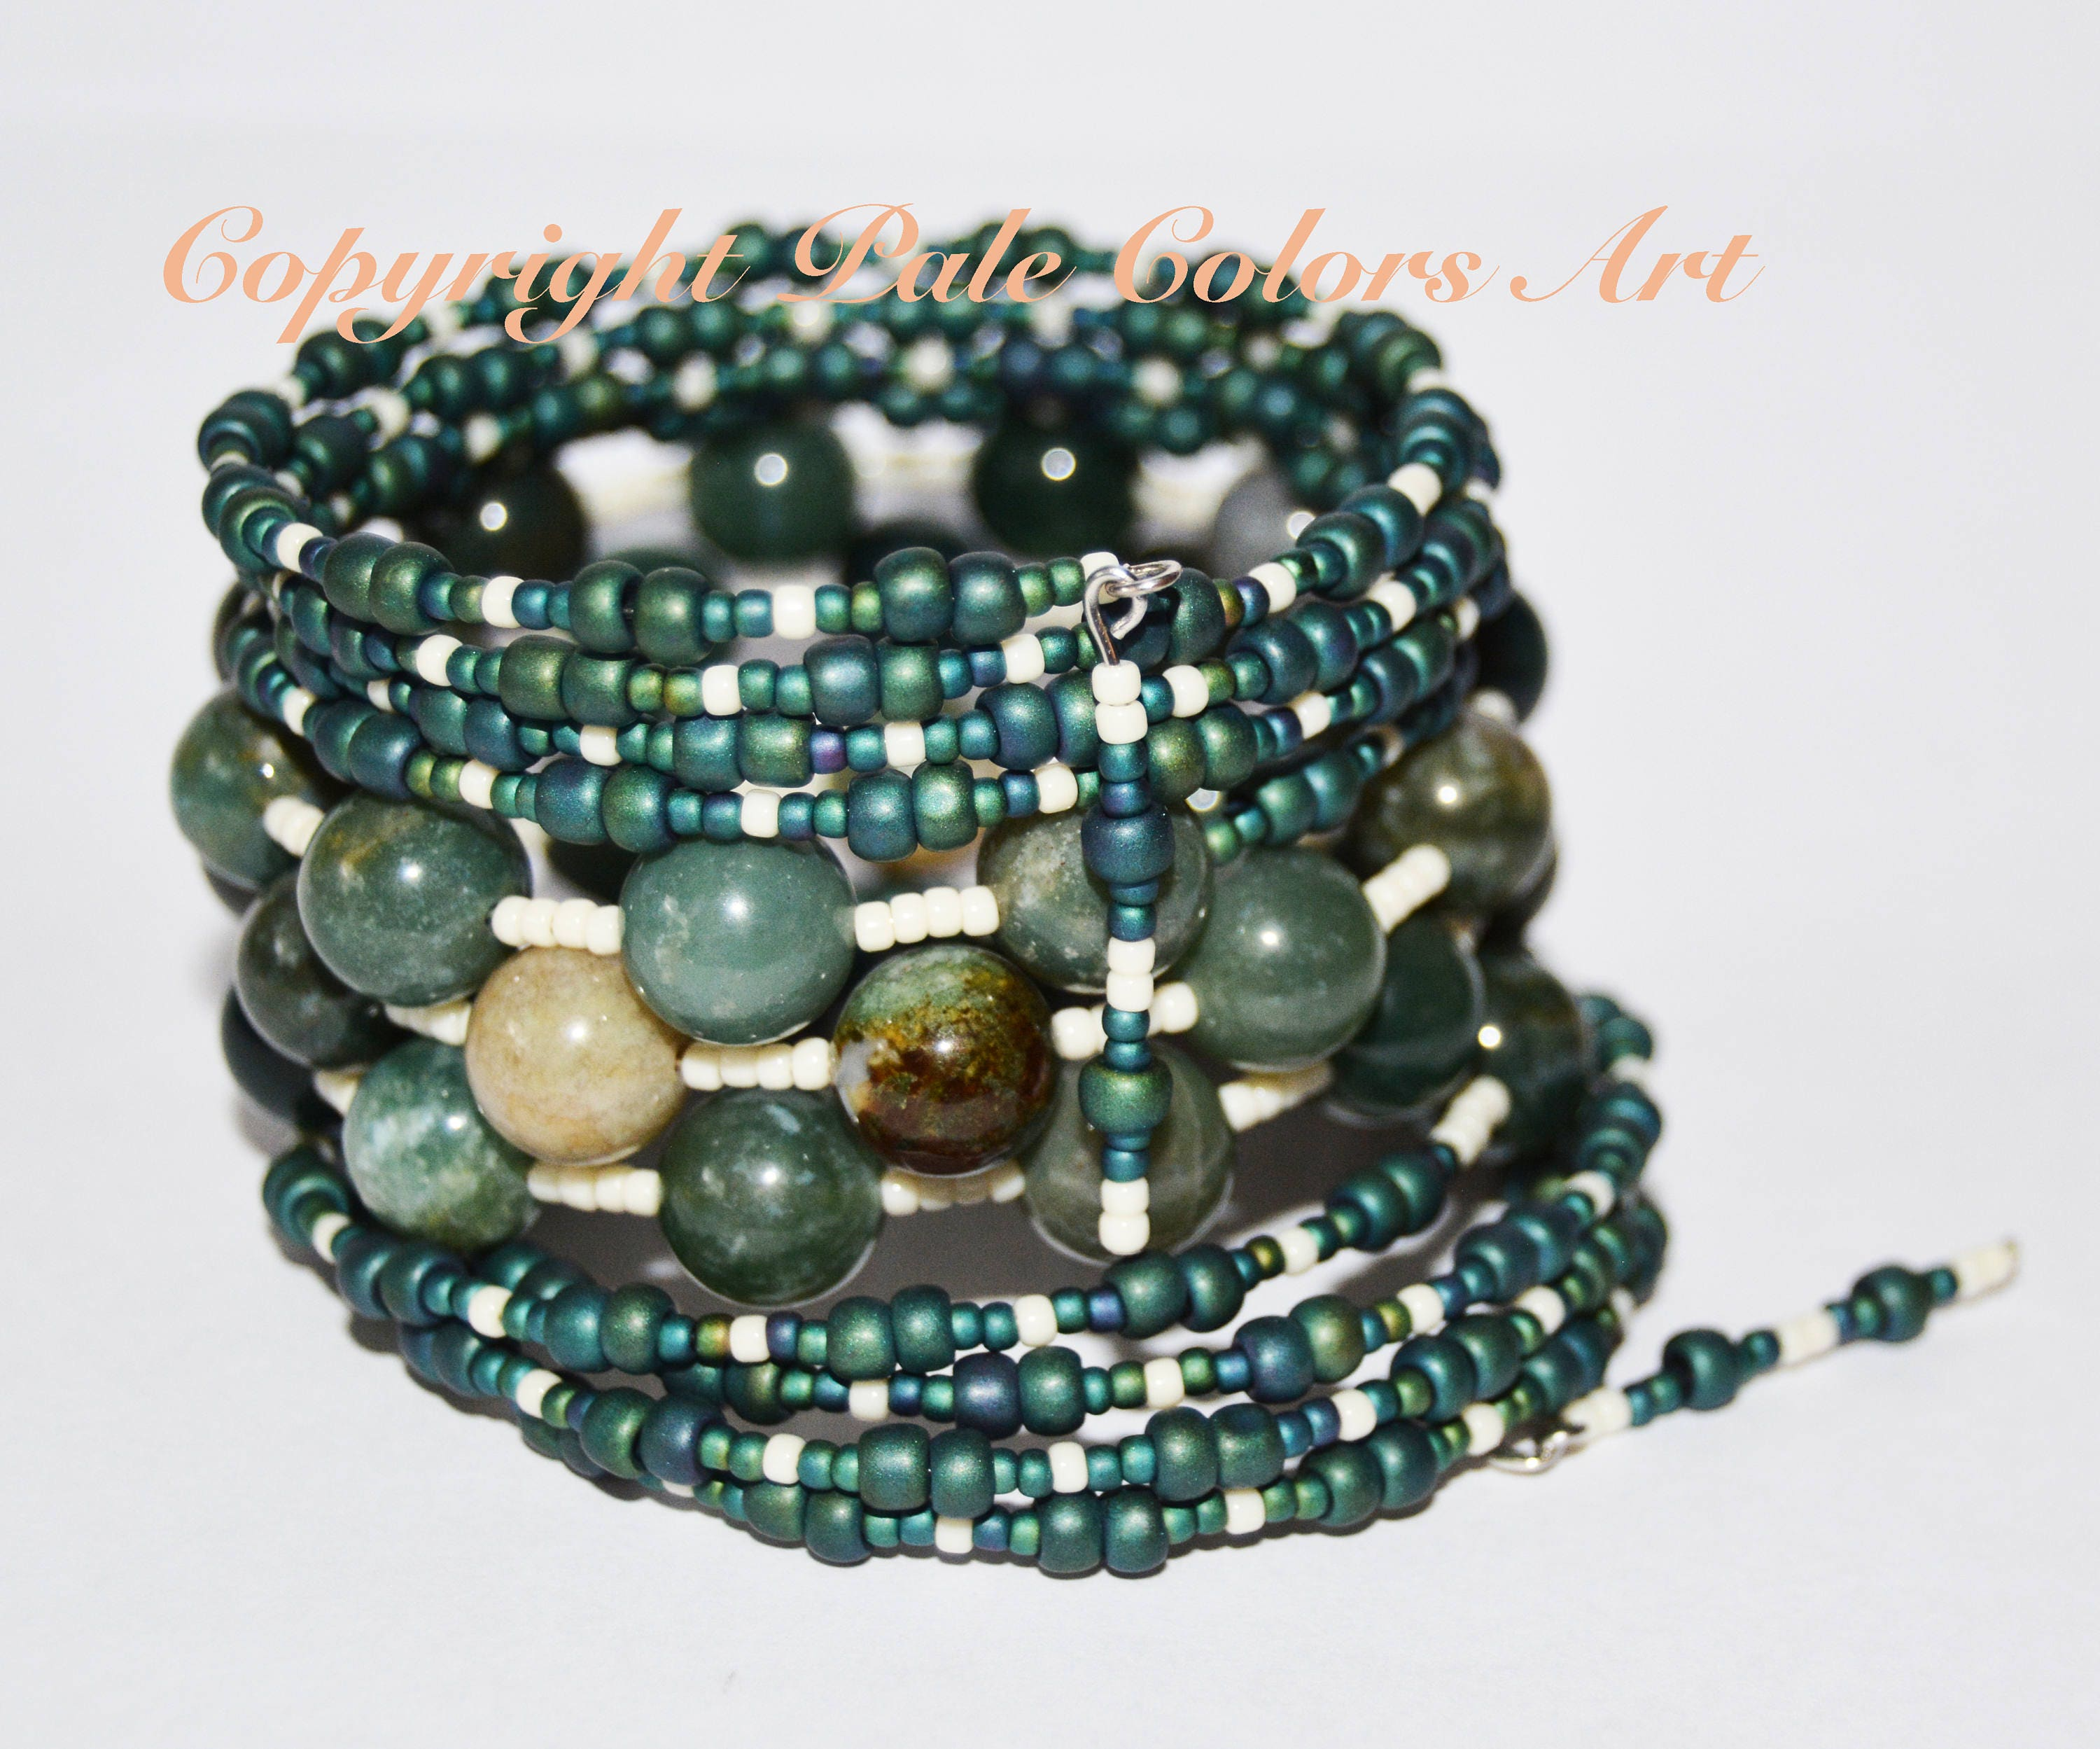 shop item melnikova olga deer bracelet online livemaster art stones with my handmade shipping stone green ornamental on